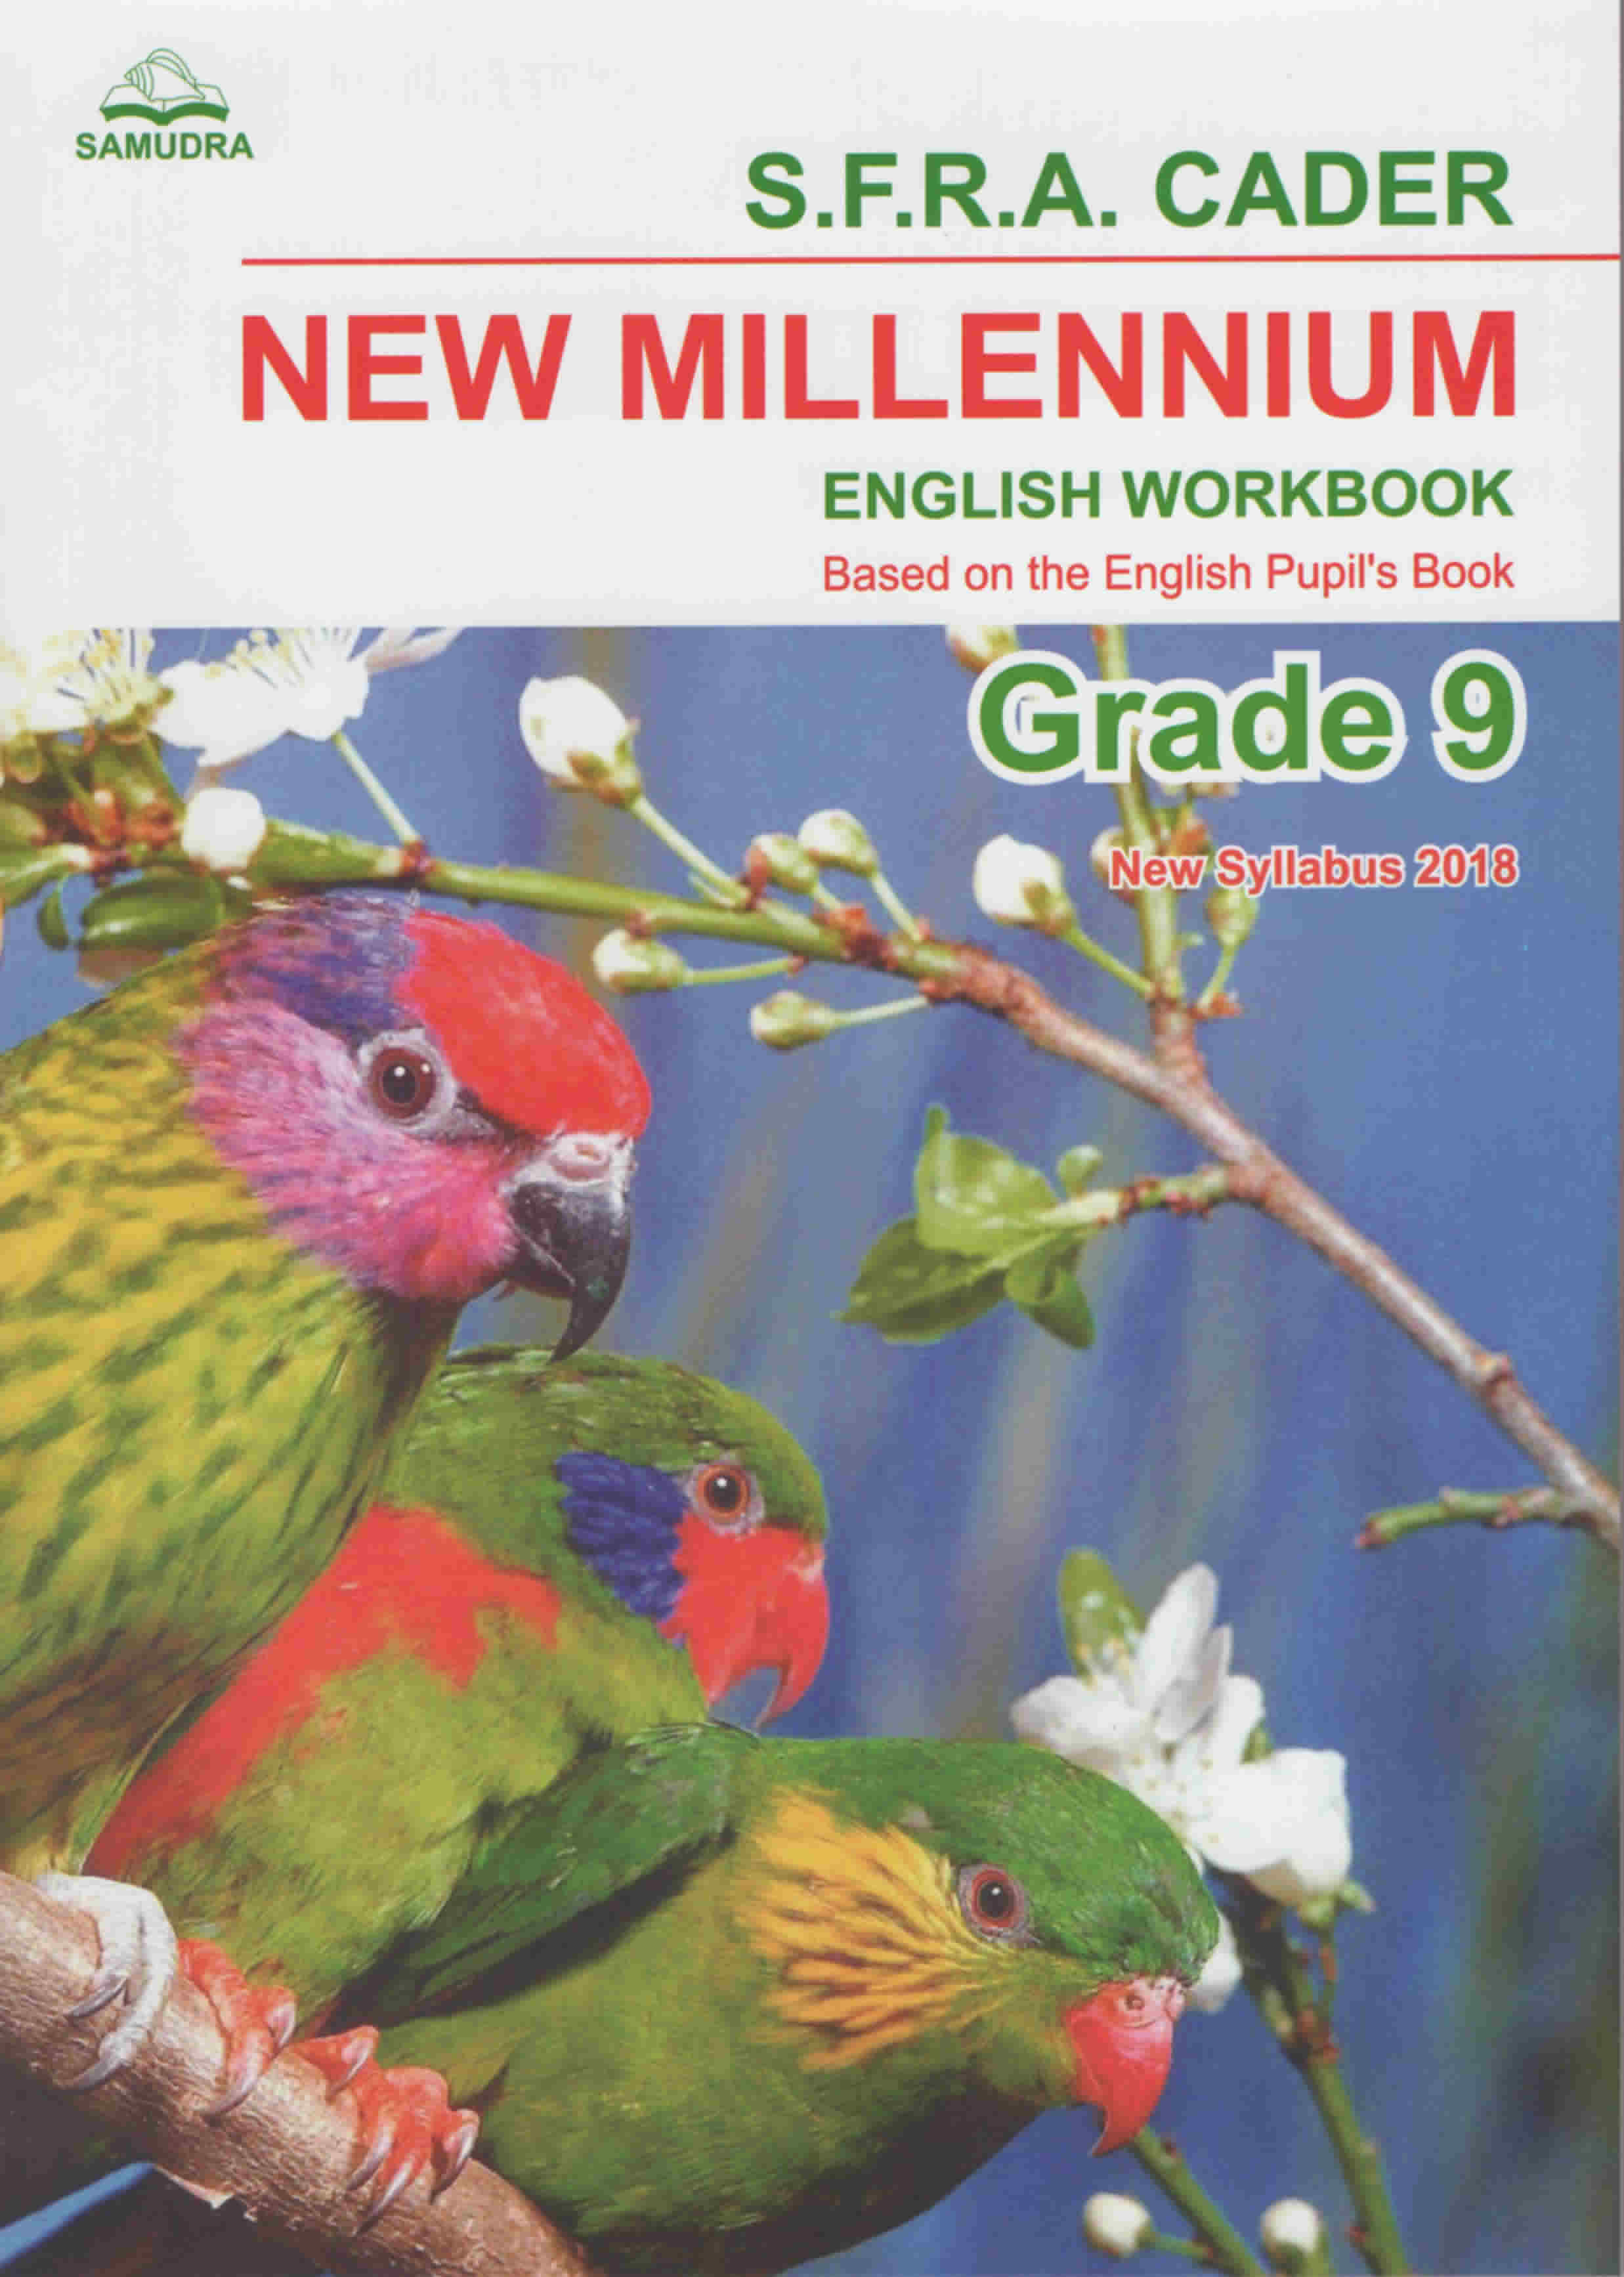 New Millennium English Workbook Grade 9